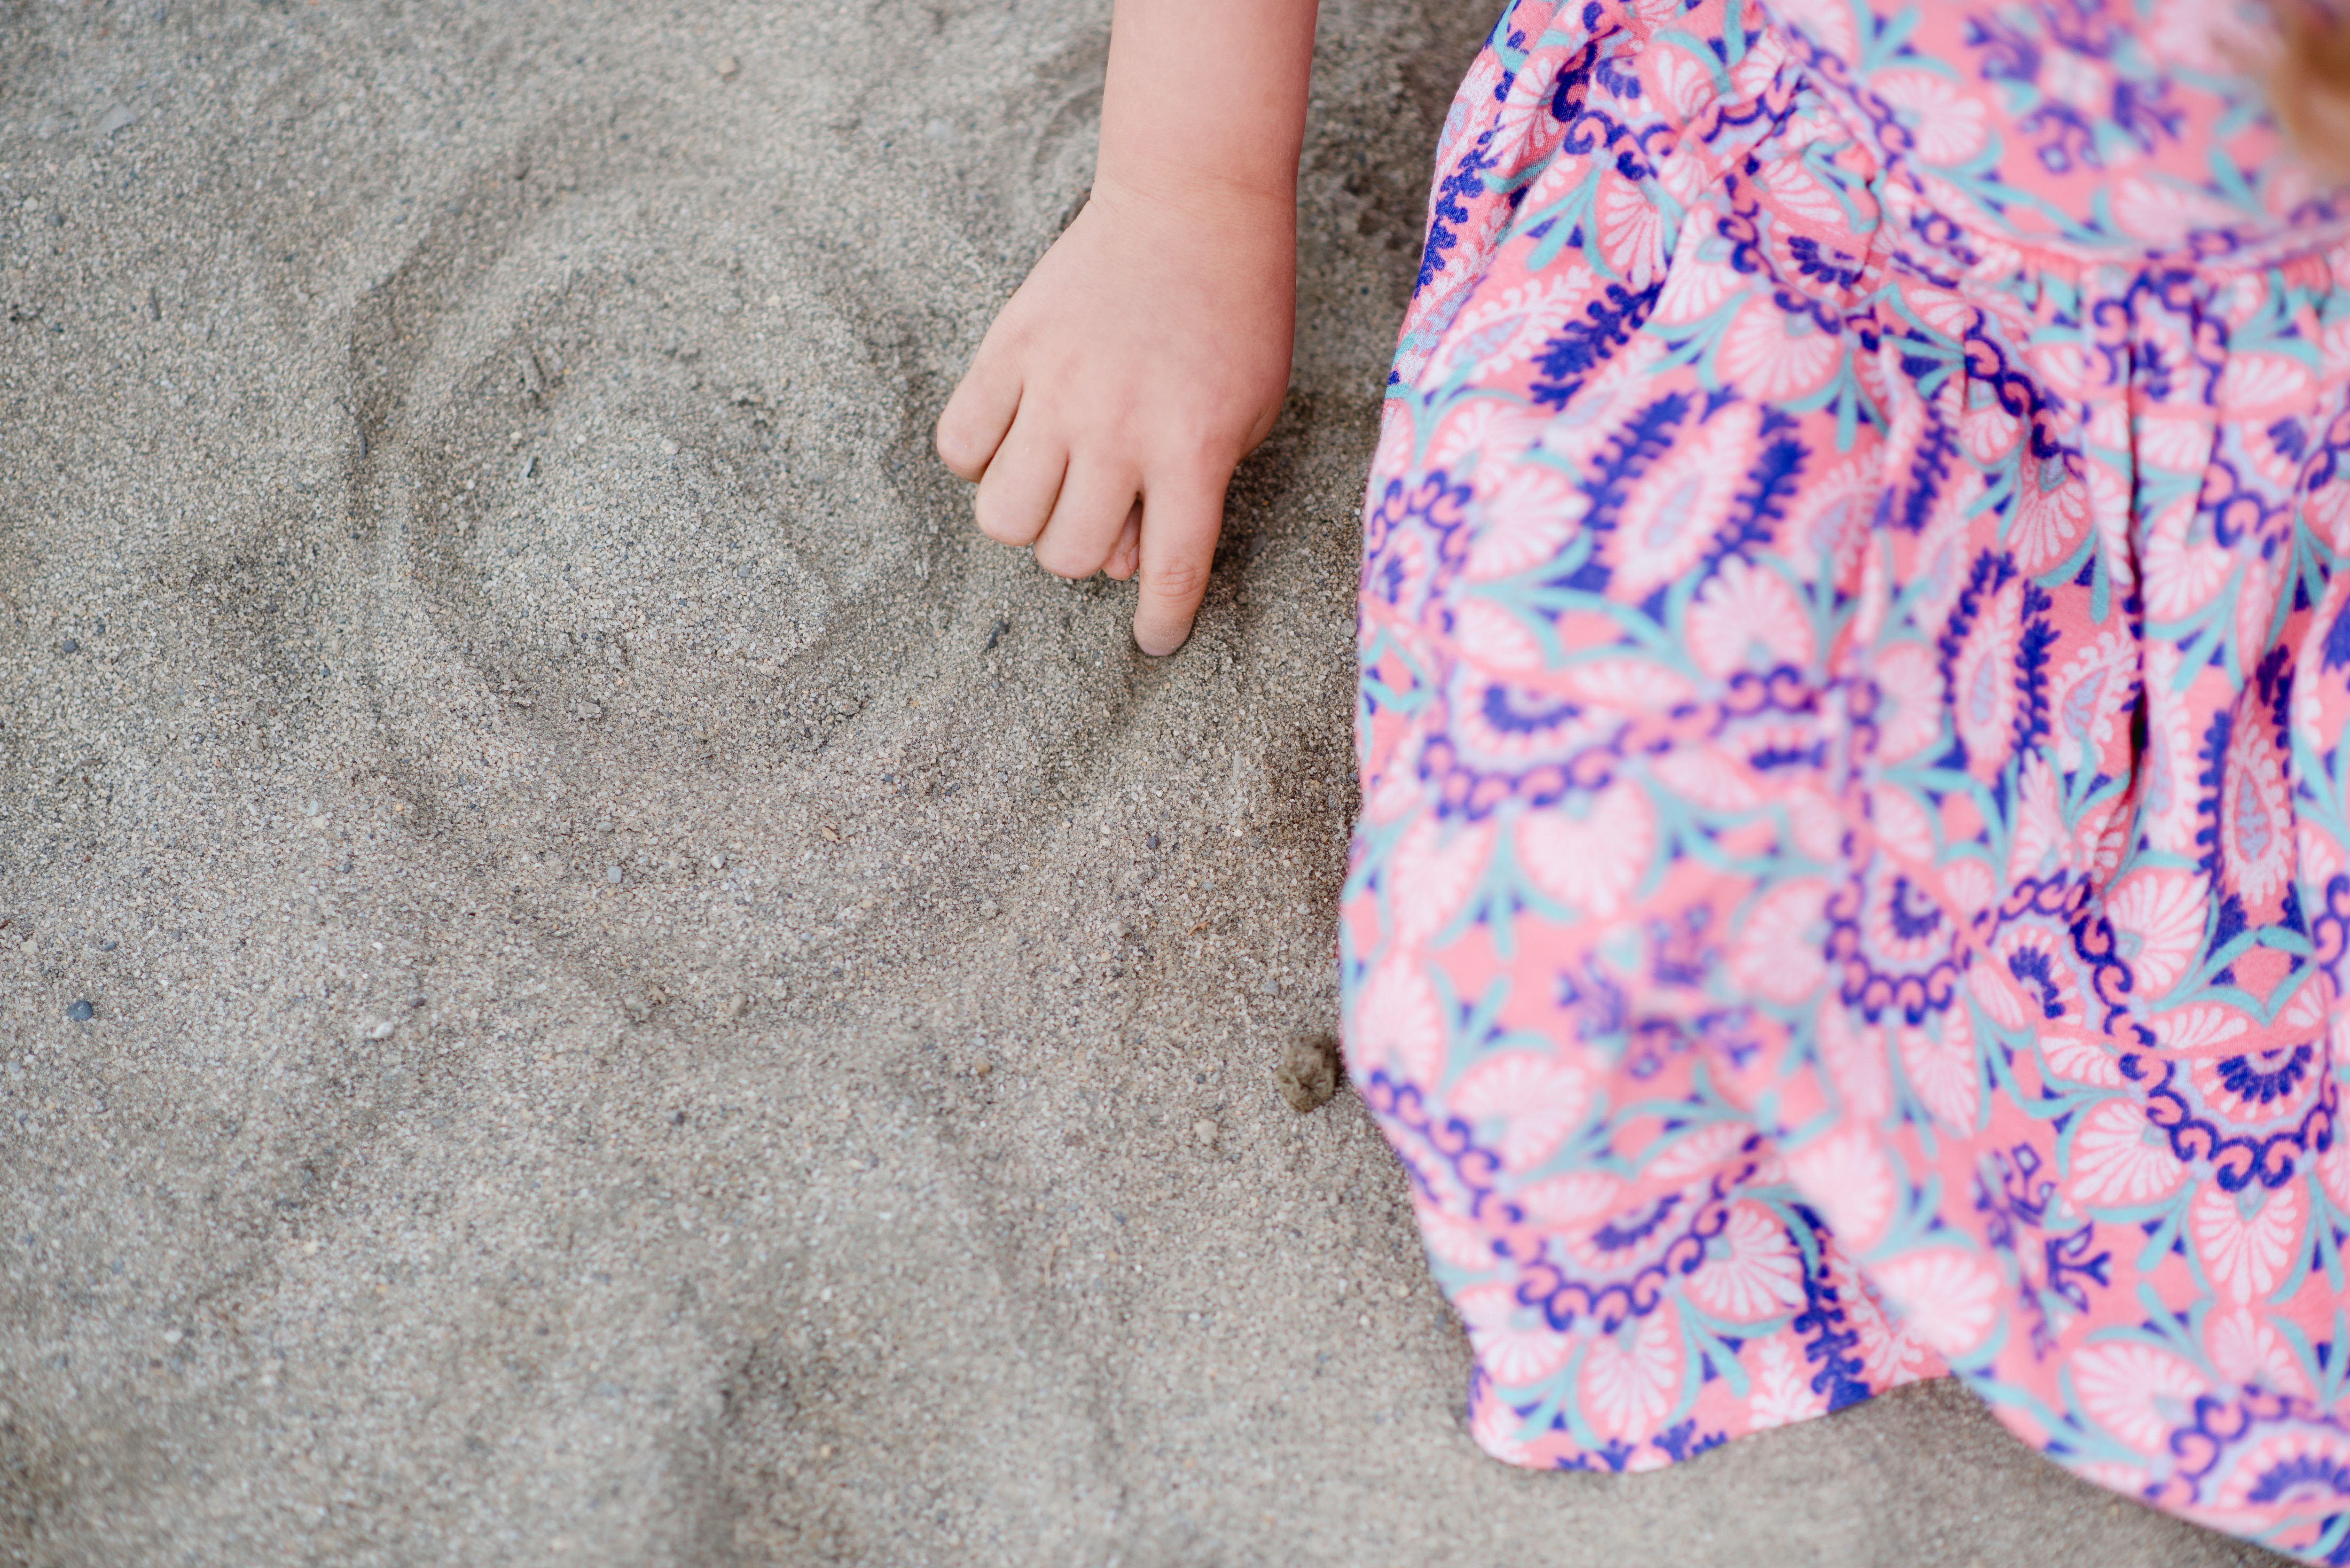 As cliche as it might sound, it's up to us to teach them to draw those lines in the sand.